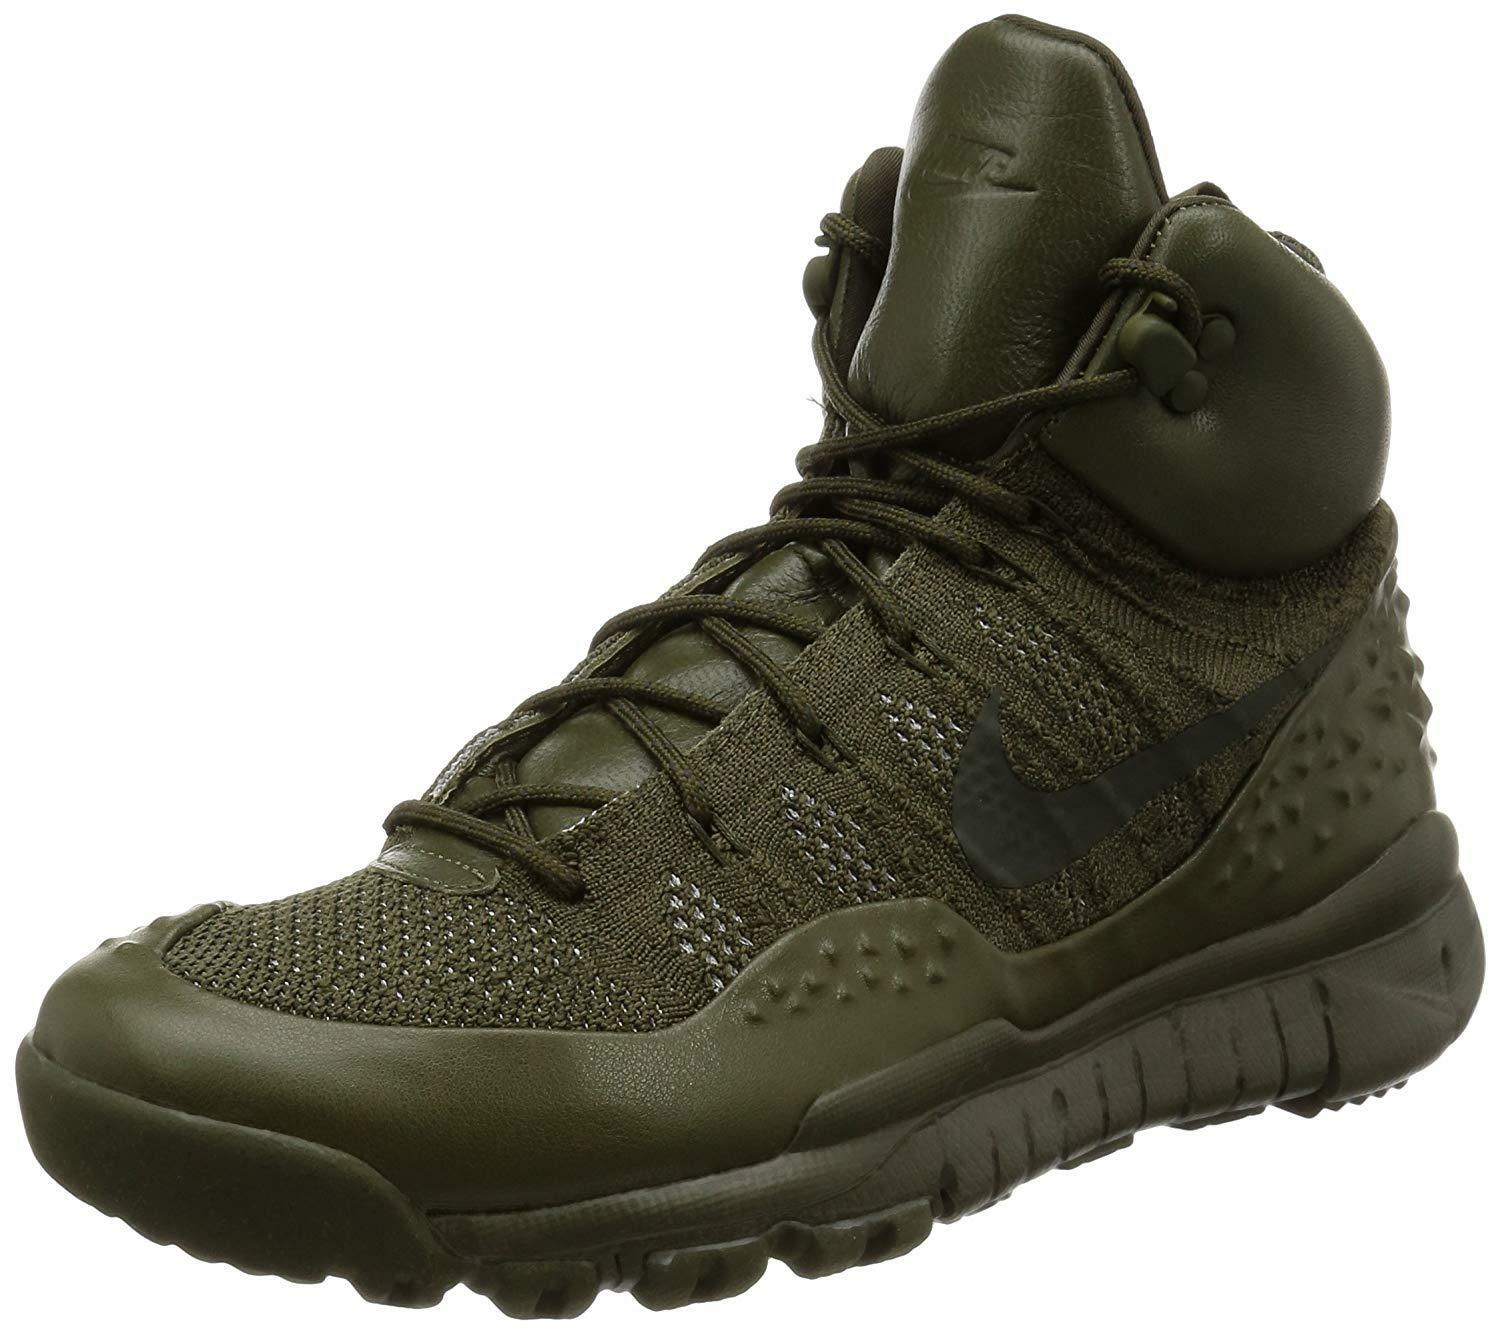 Men's Nike Lupinek Flyknit Sneakers CARGO Shoes - Size 10 (862505-300) CARGO Sneakers KHAKI/SEQ 0b58dc